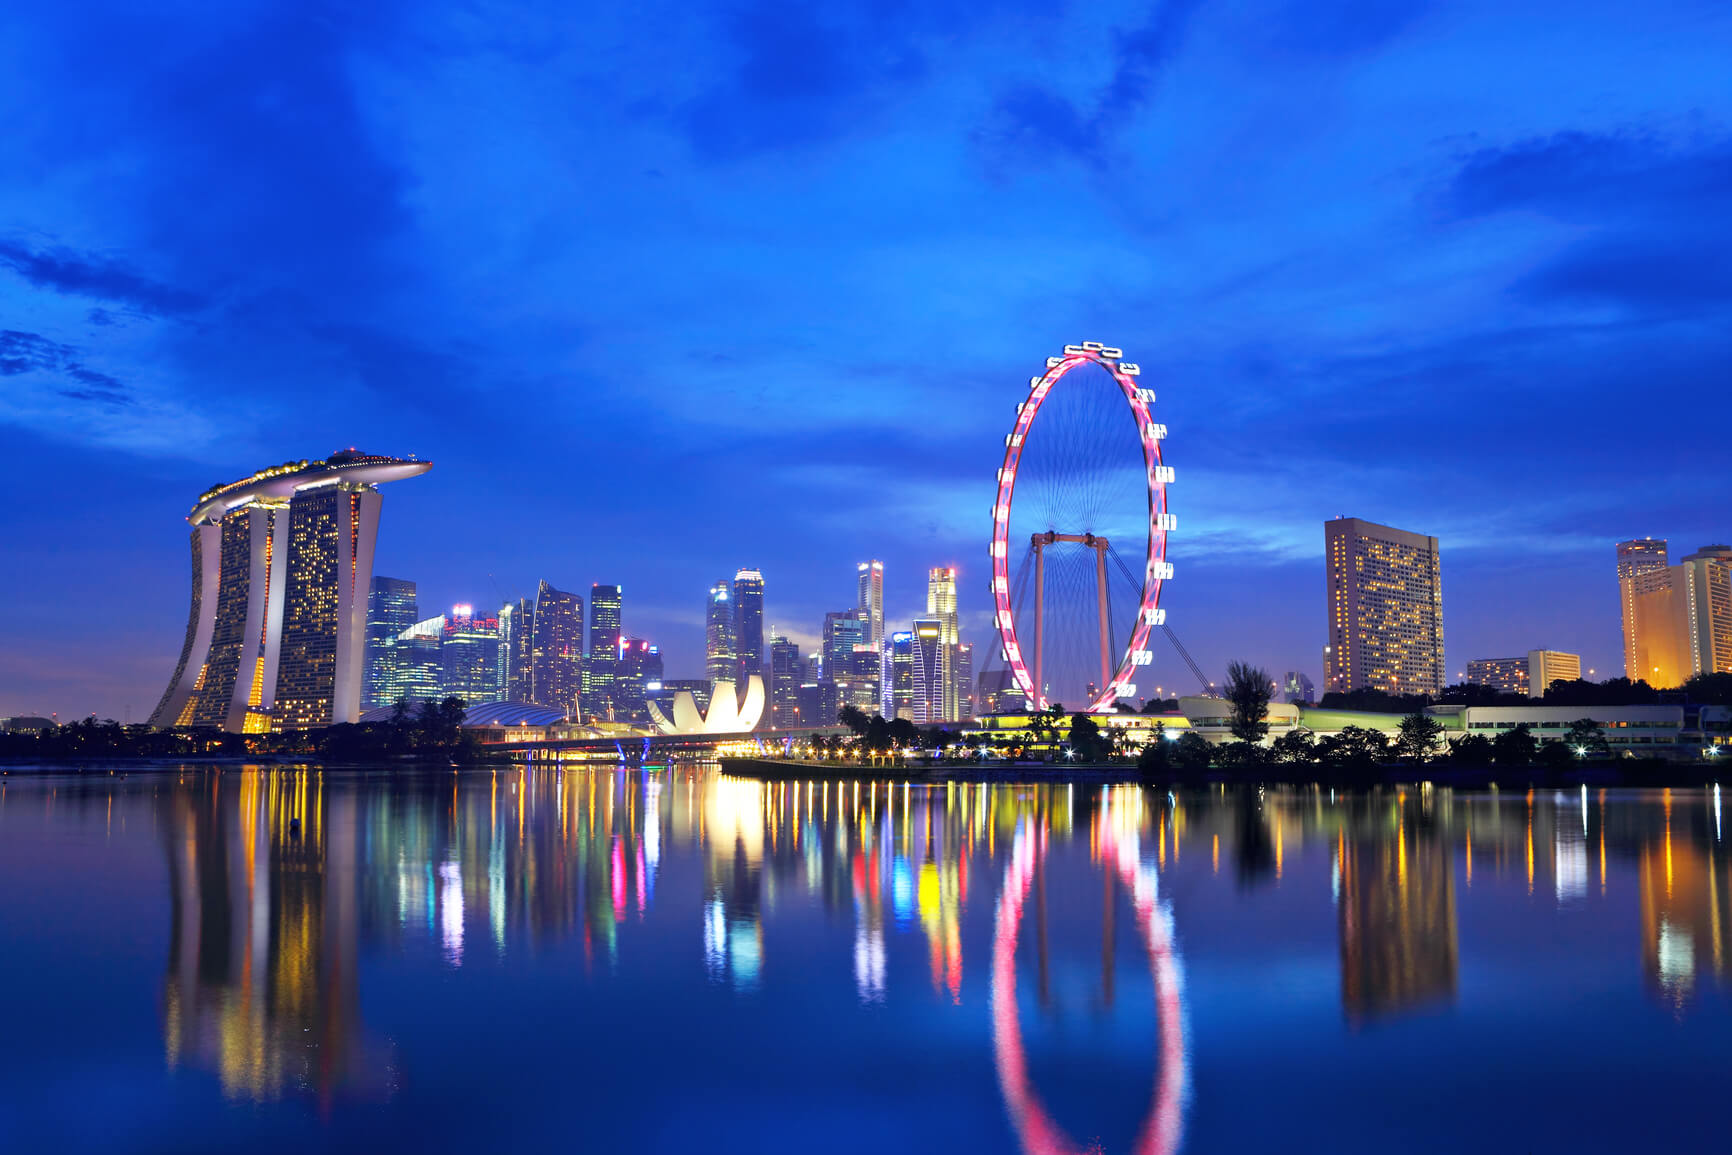 Oslo, Norway to Singapore for only €374 roundtrip (Sep-Nov dates)